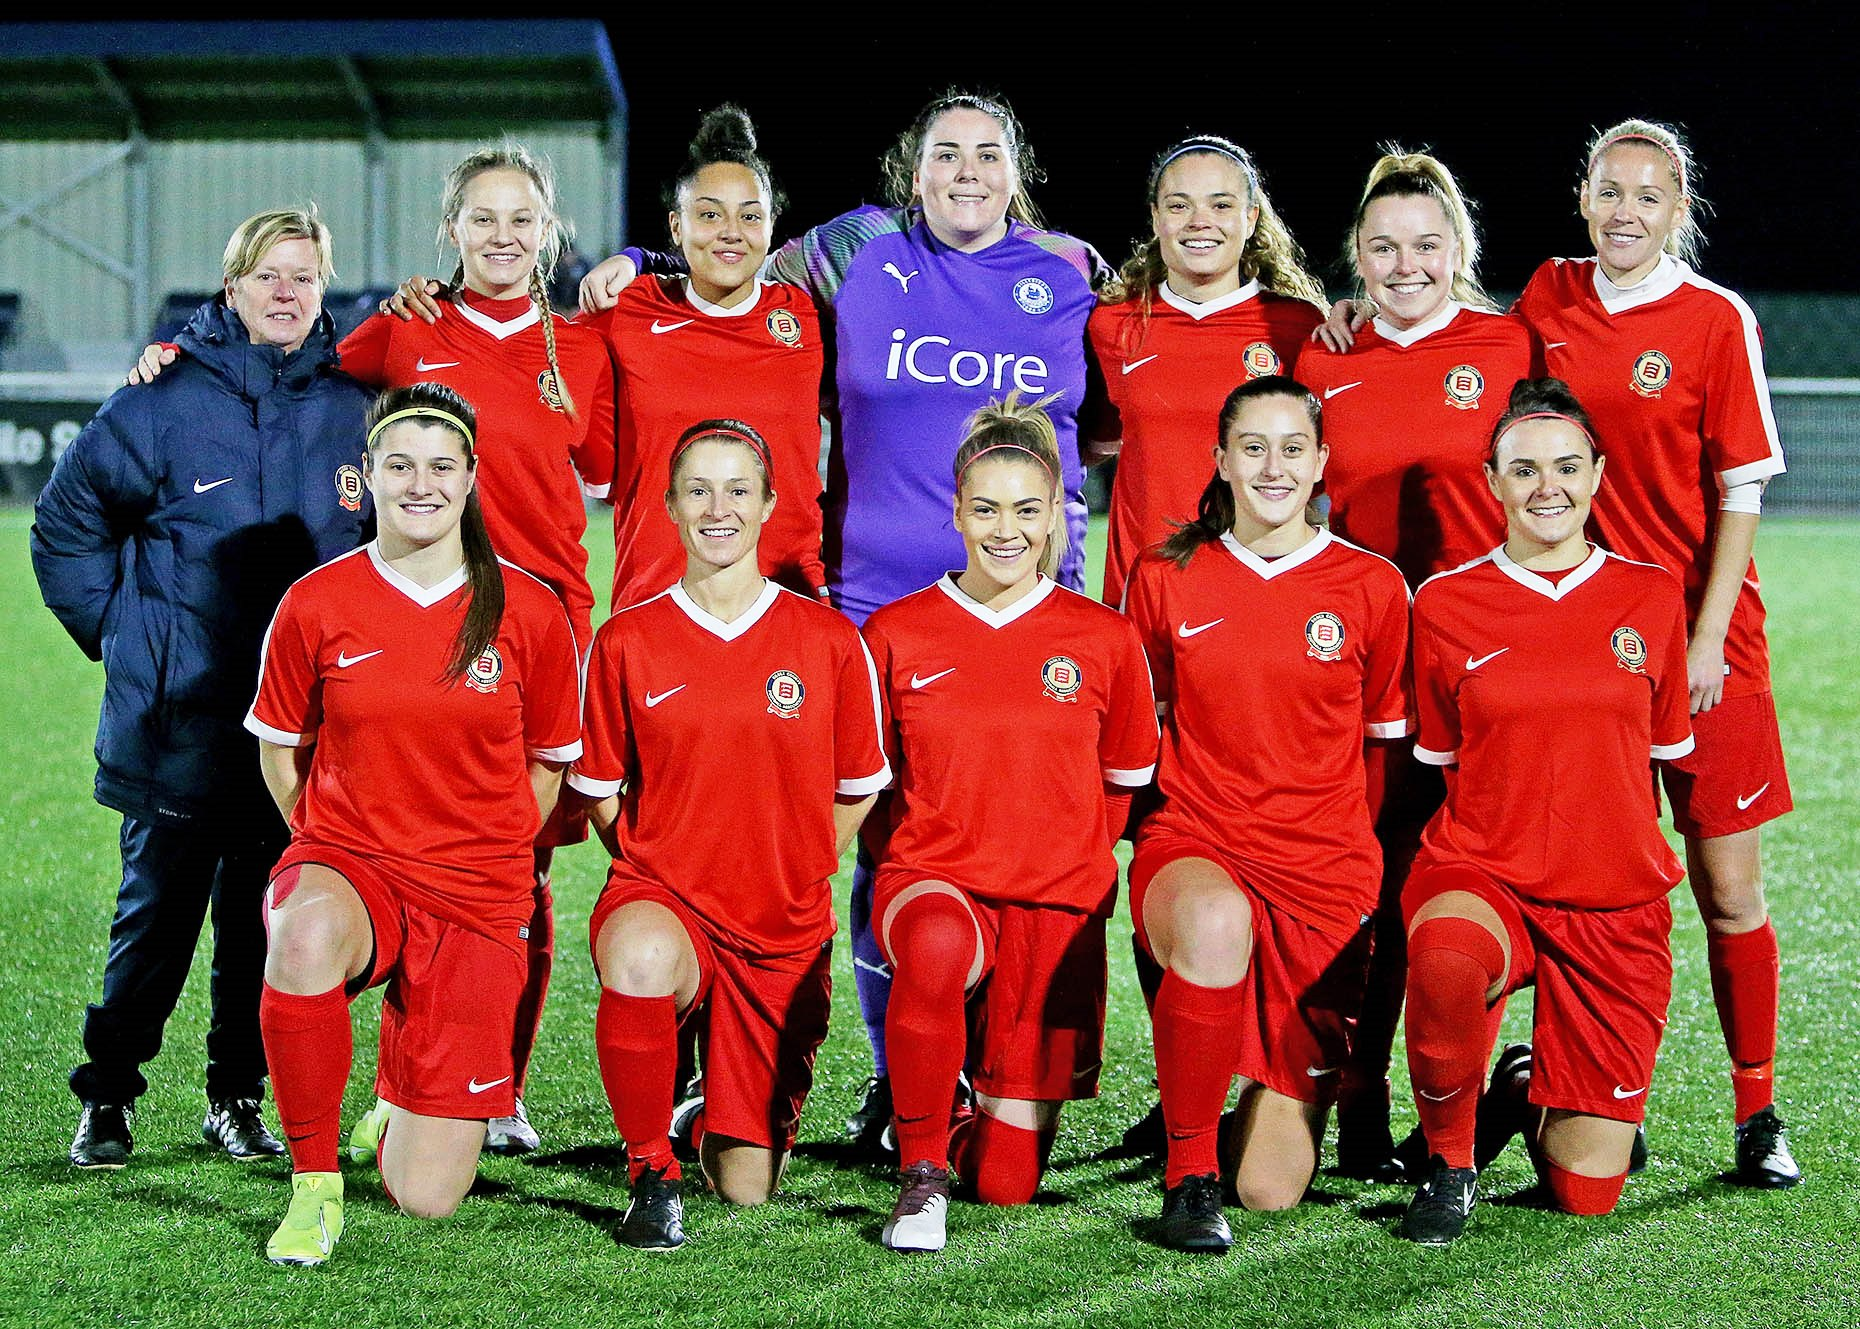 Essex 5-0 Royal Air Force (Women)